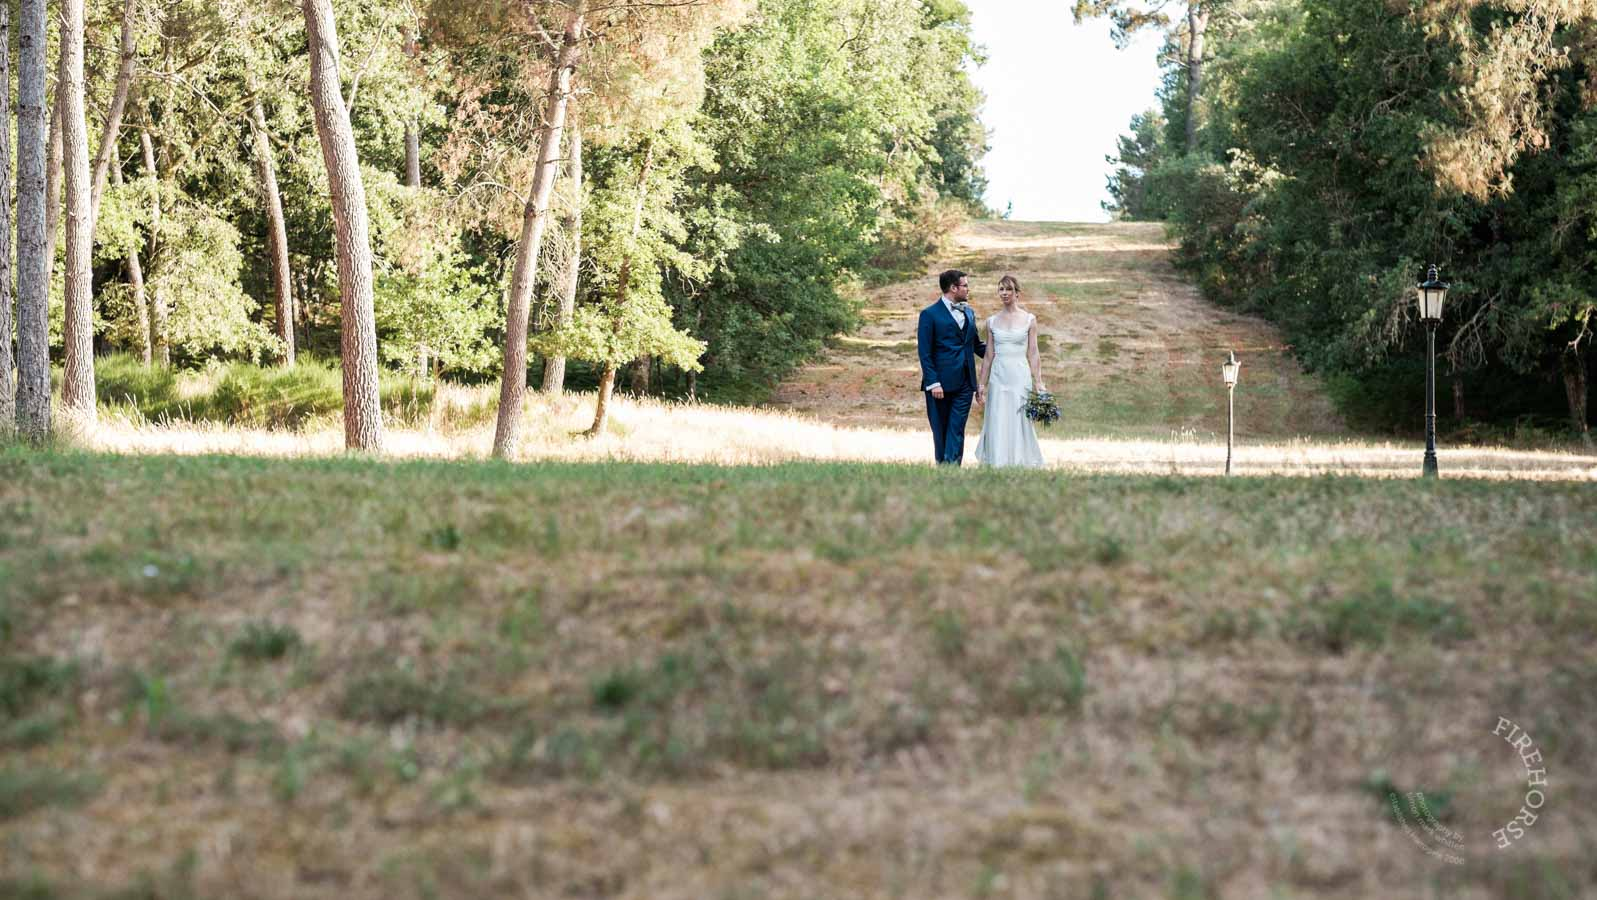 Lot-et-Garonne-Wedding-Photography-296